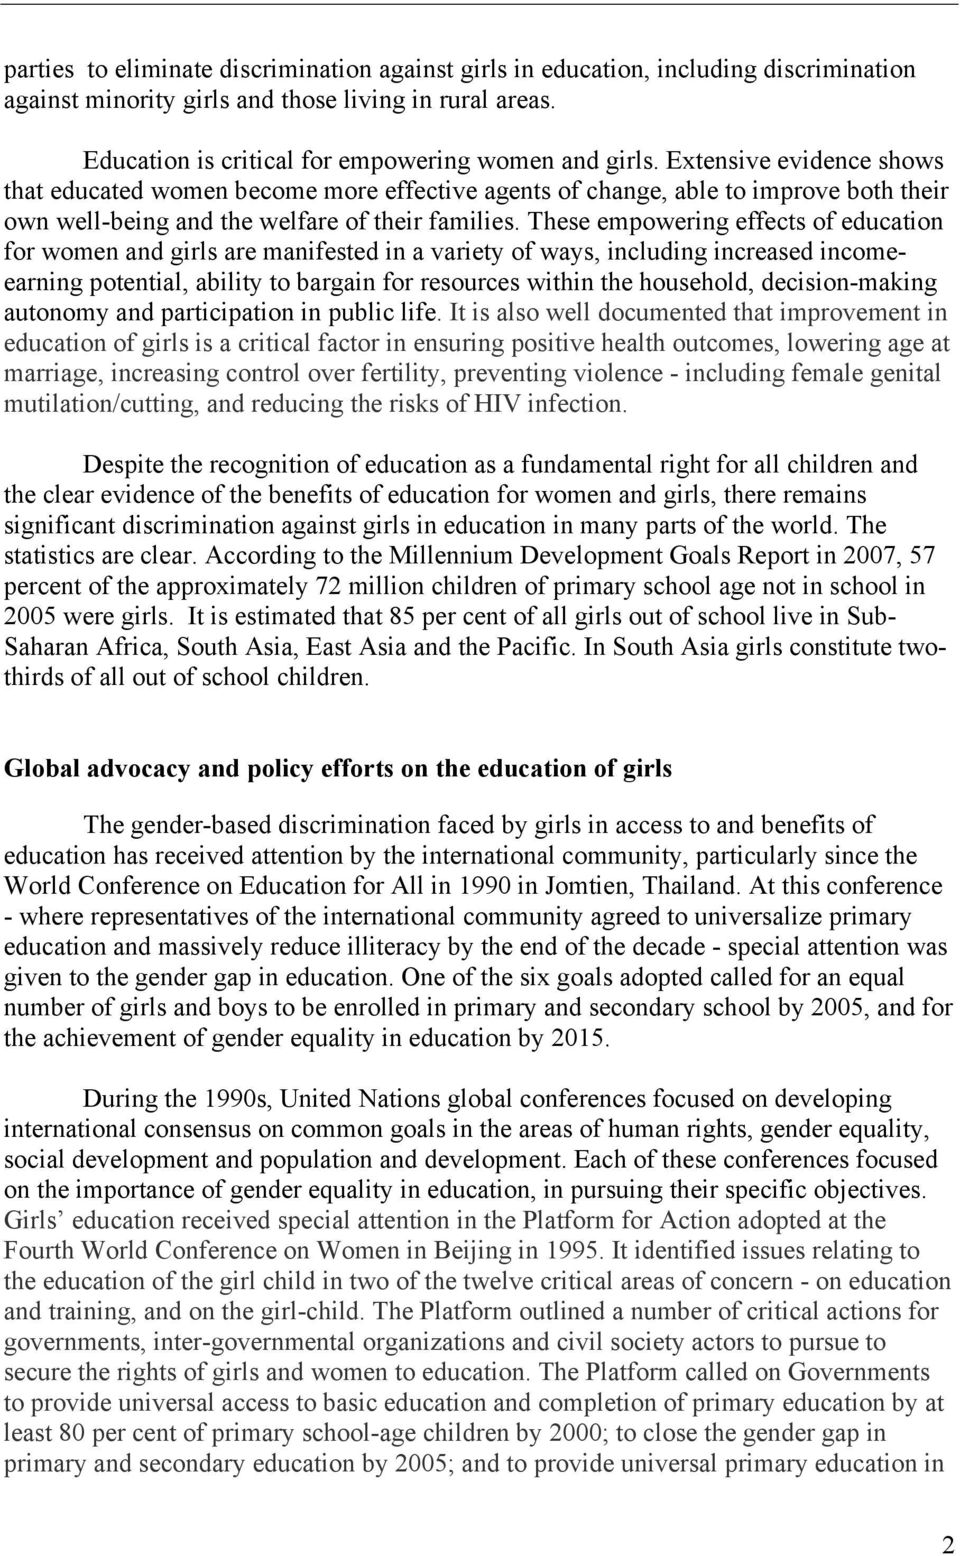 These empowering effects of education for women and girls are manifested in a variety of ways, including increased incomeearning potential, ability to bargain for resources within the household,